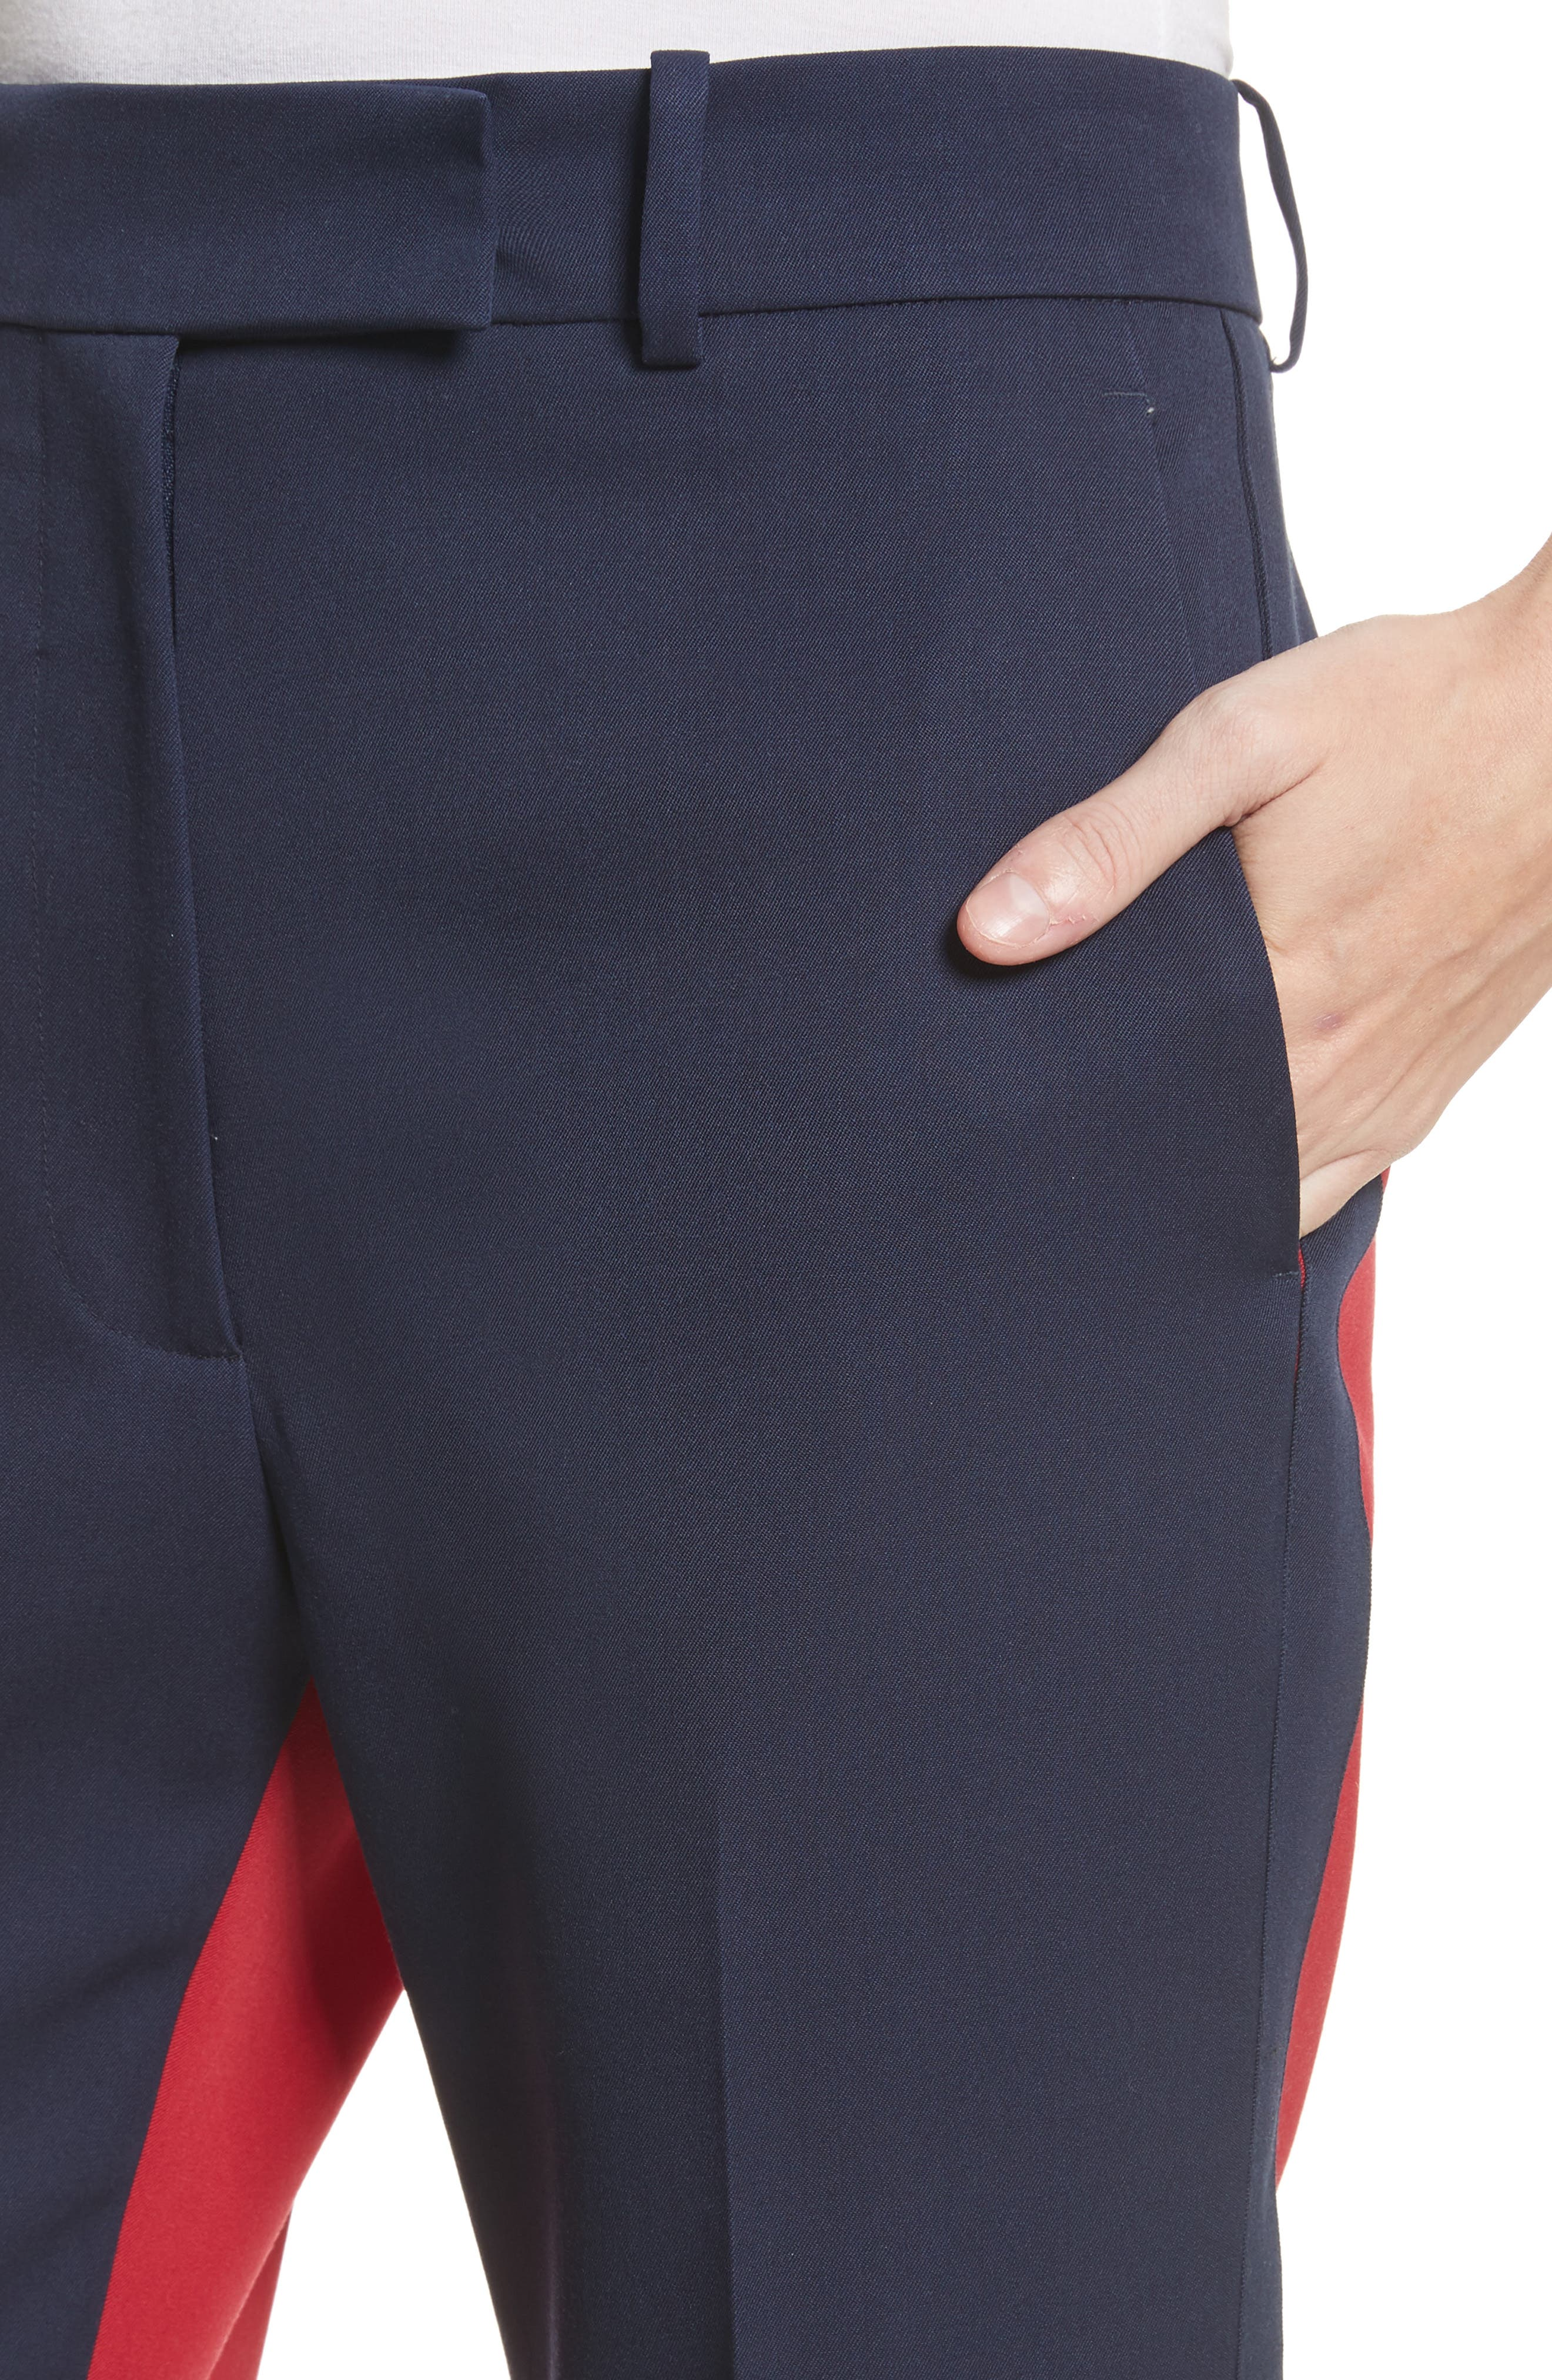 Colorblock Wool Trousers,                             Alternate thumbnail 4, color,